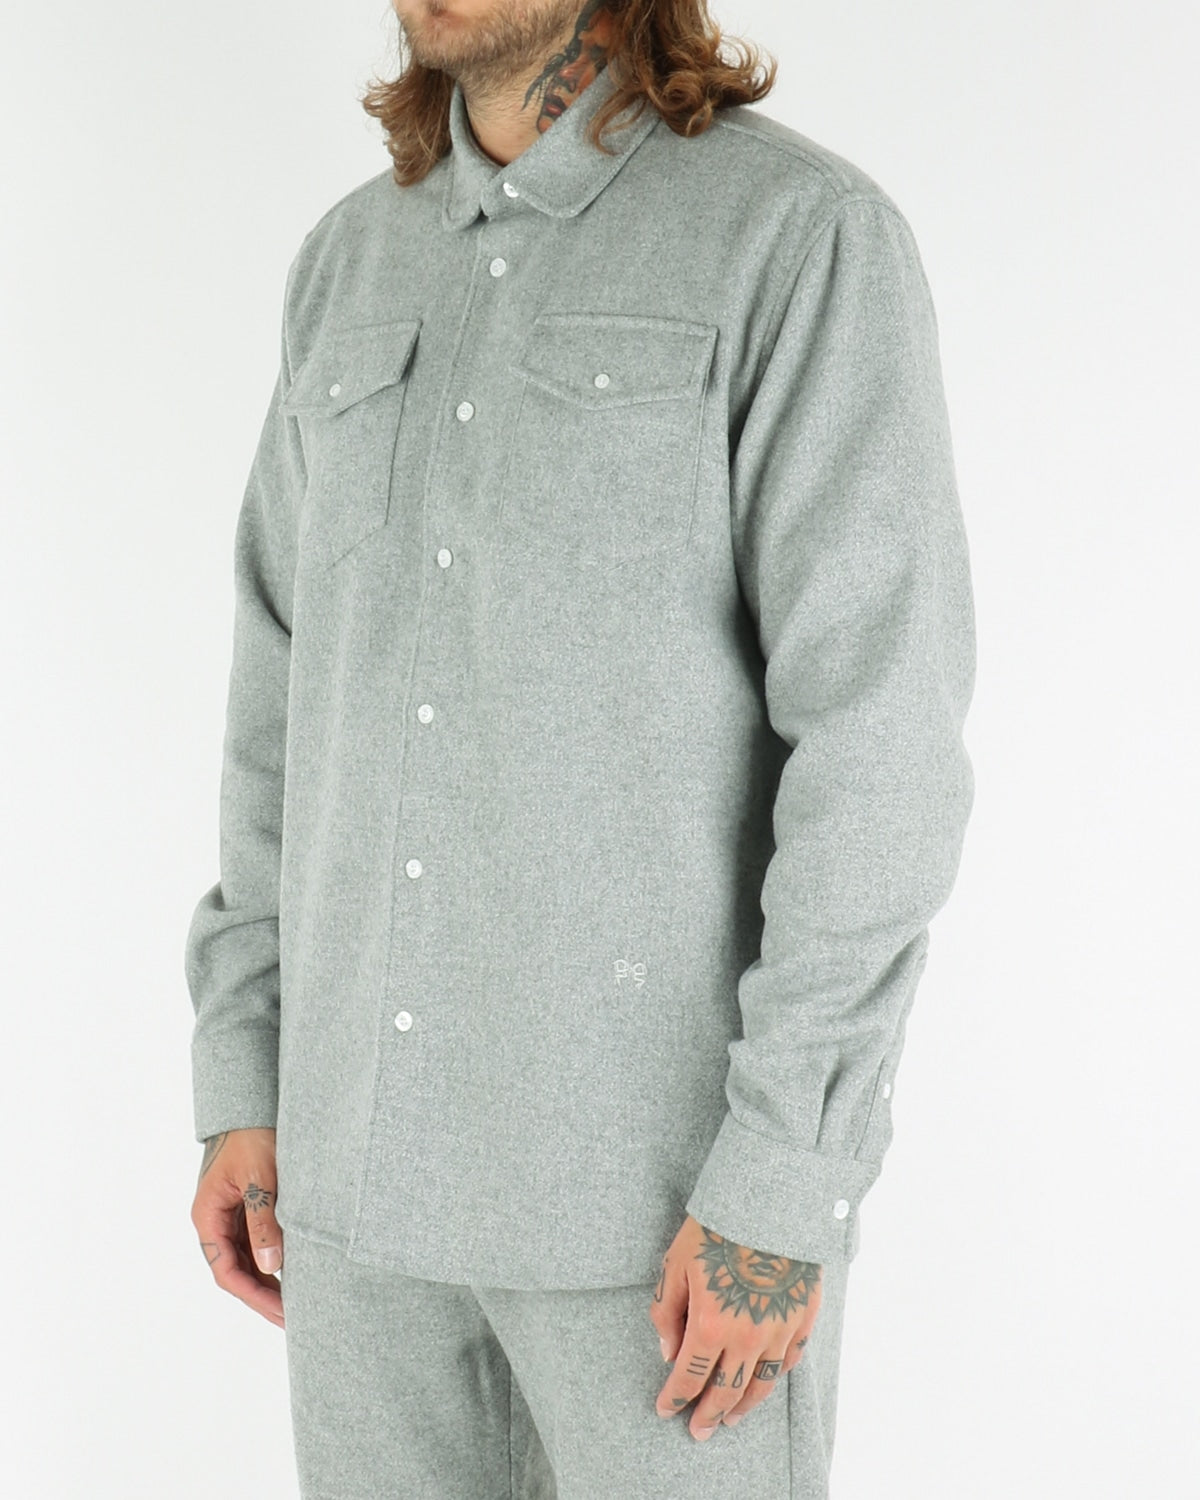 soulland_tom western shirt_grey_view_2_3